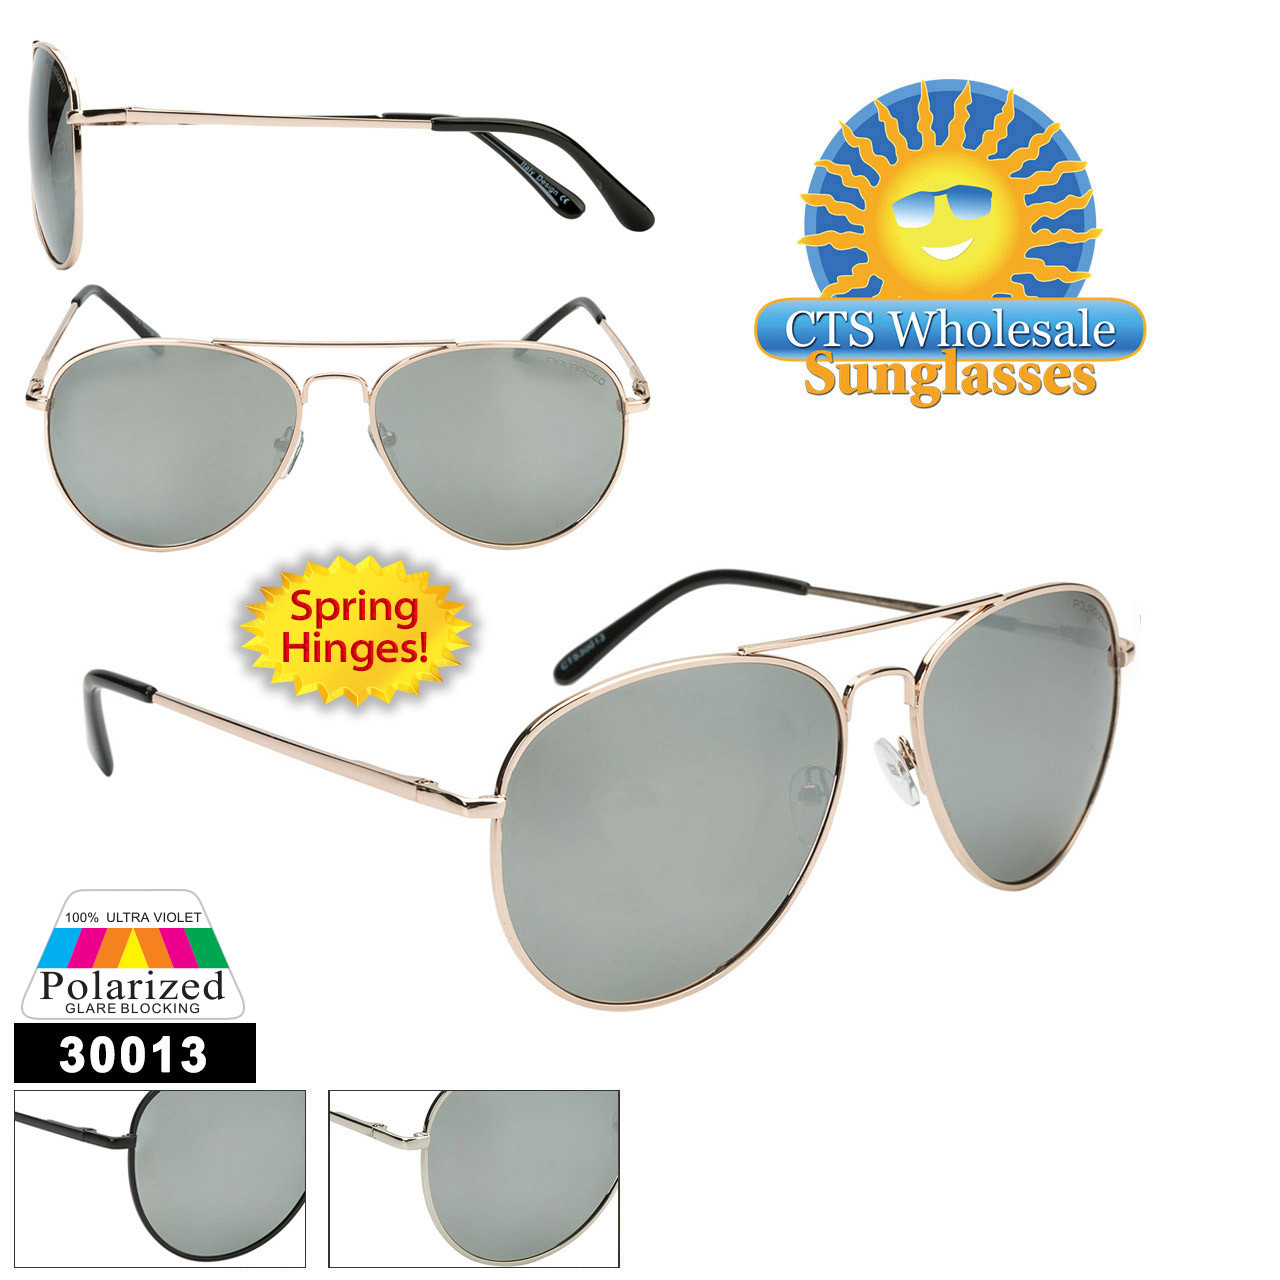 Polarized Mirrored Aviators  - Style #30013